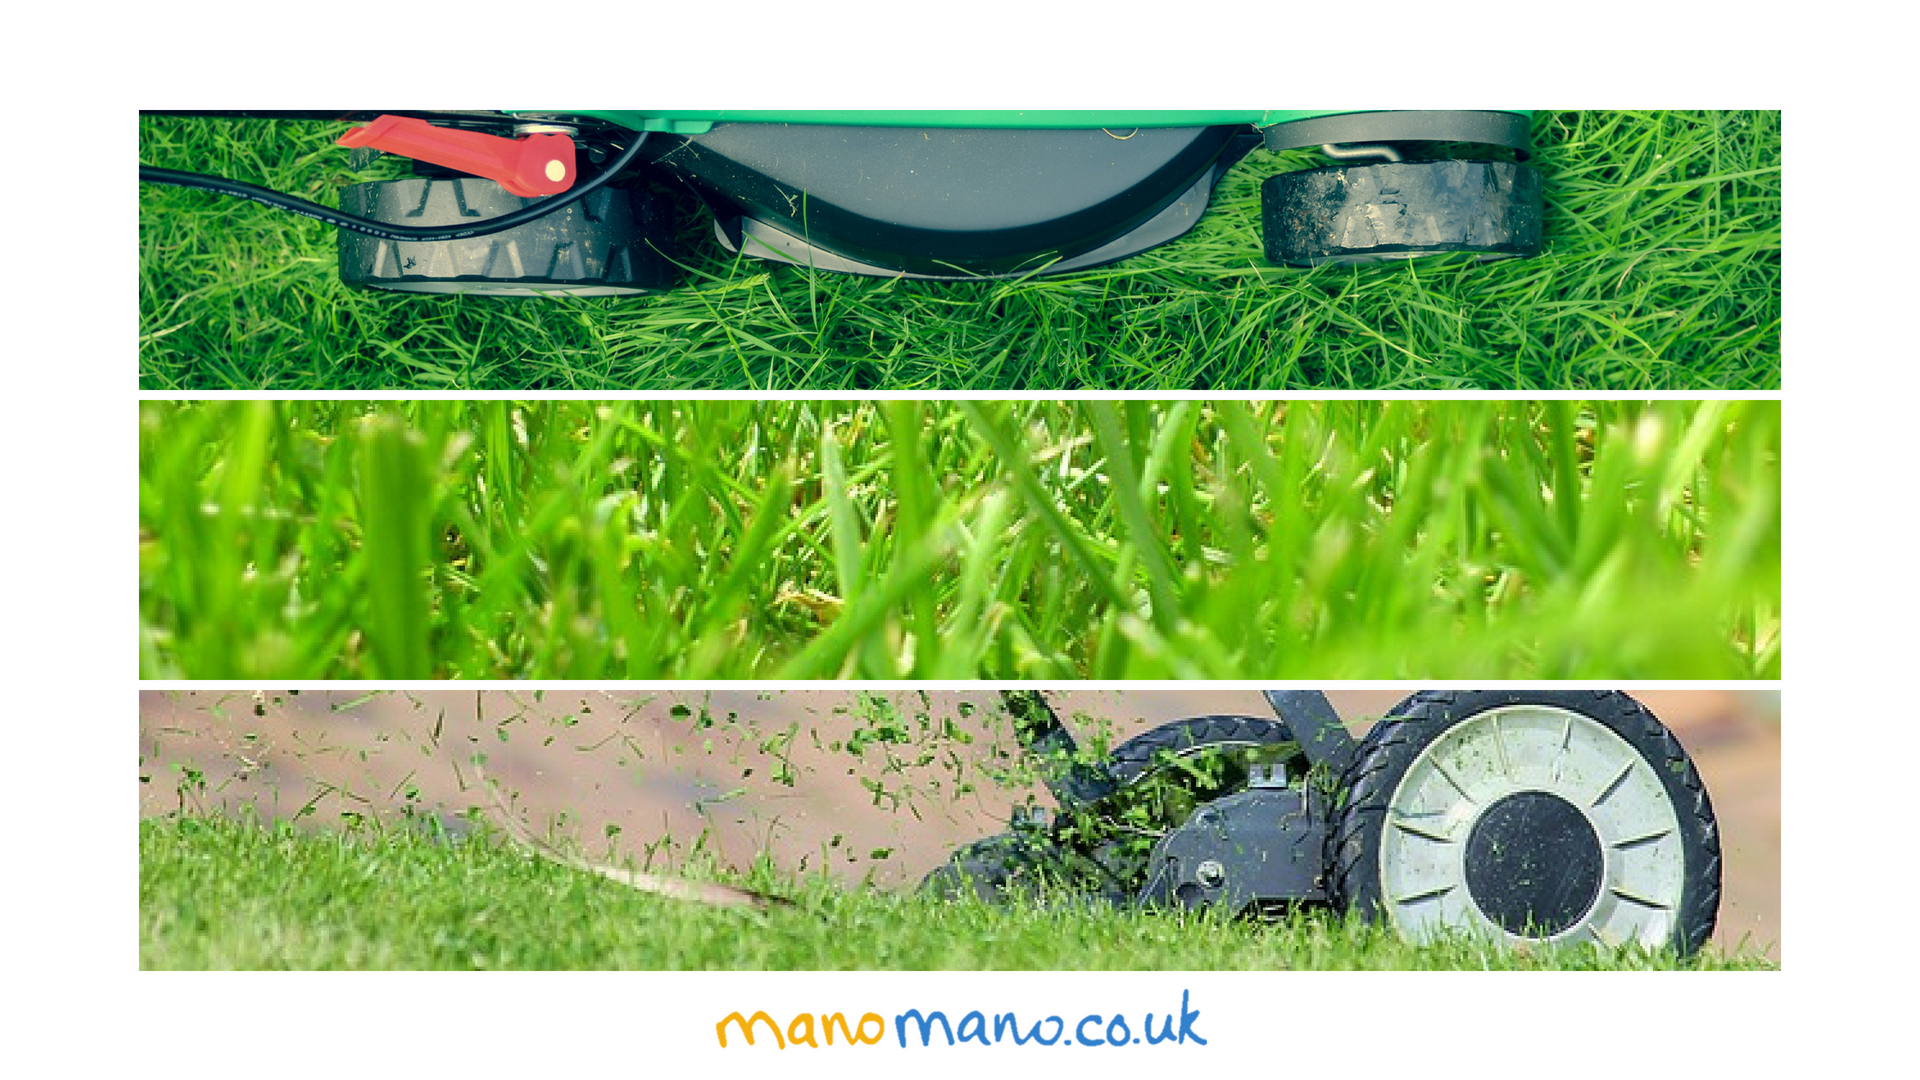 thehandymano mano lawn mowing tips feature cover photo